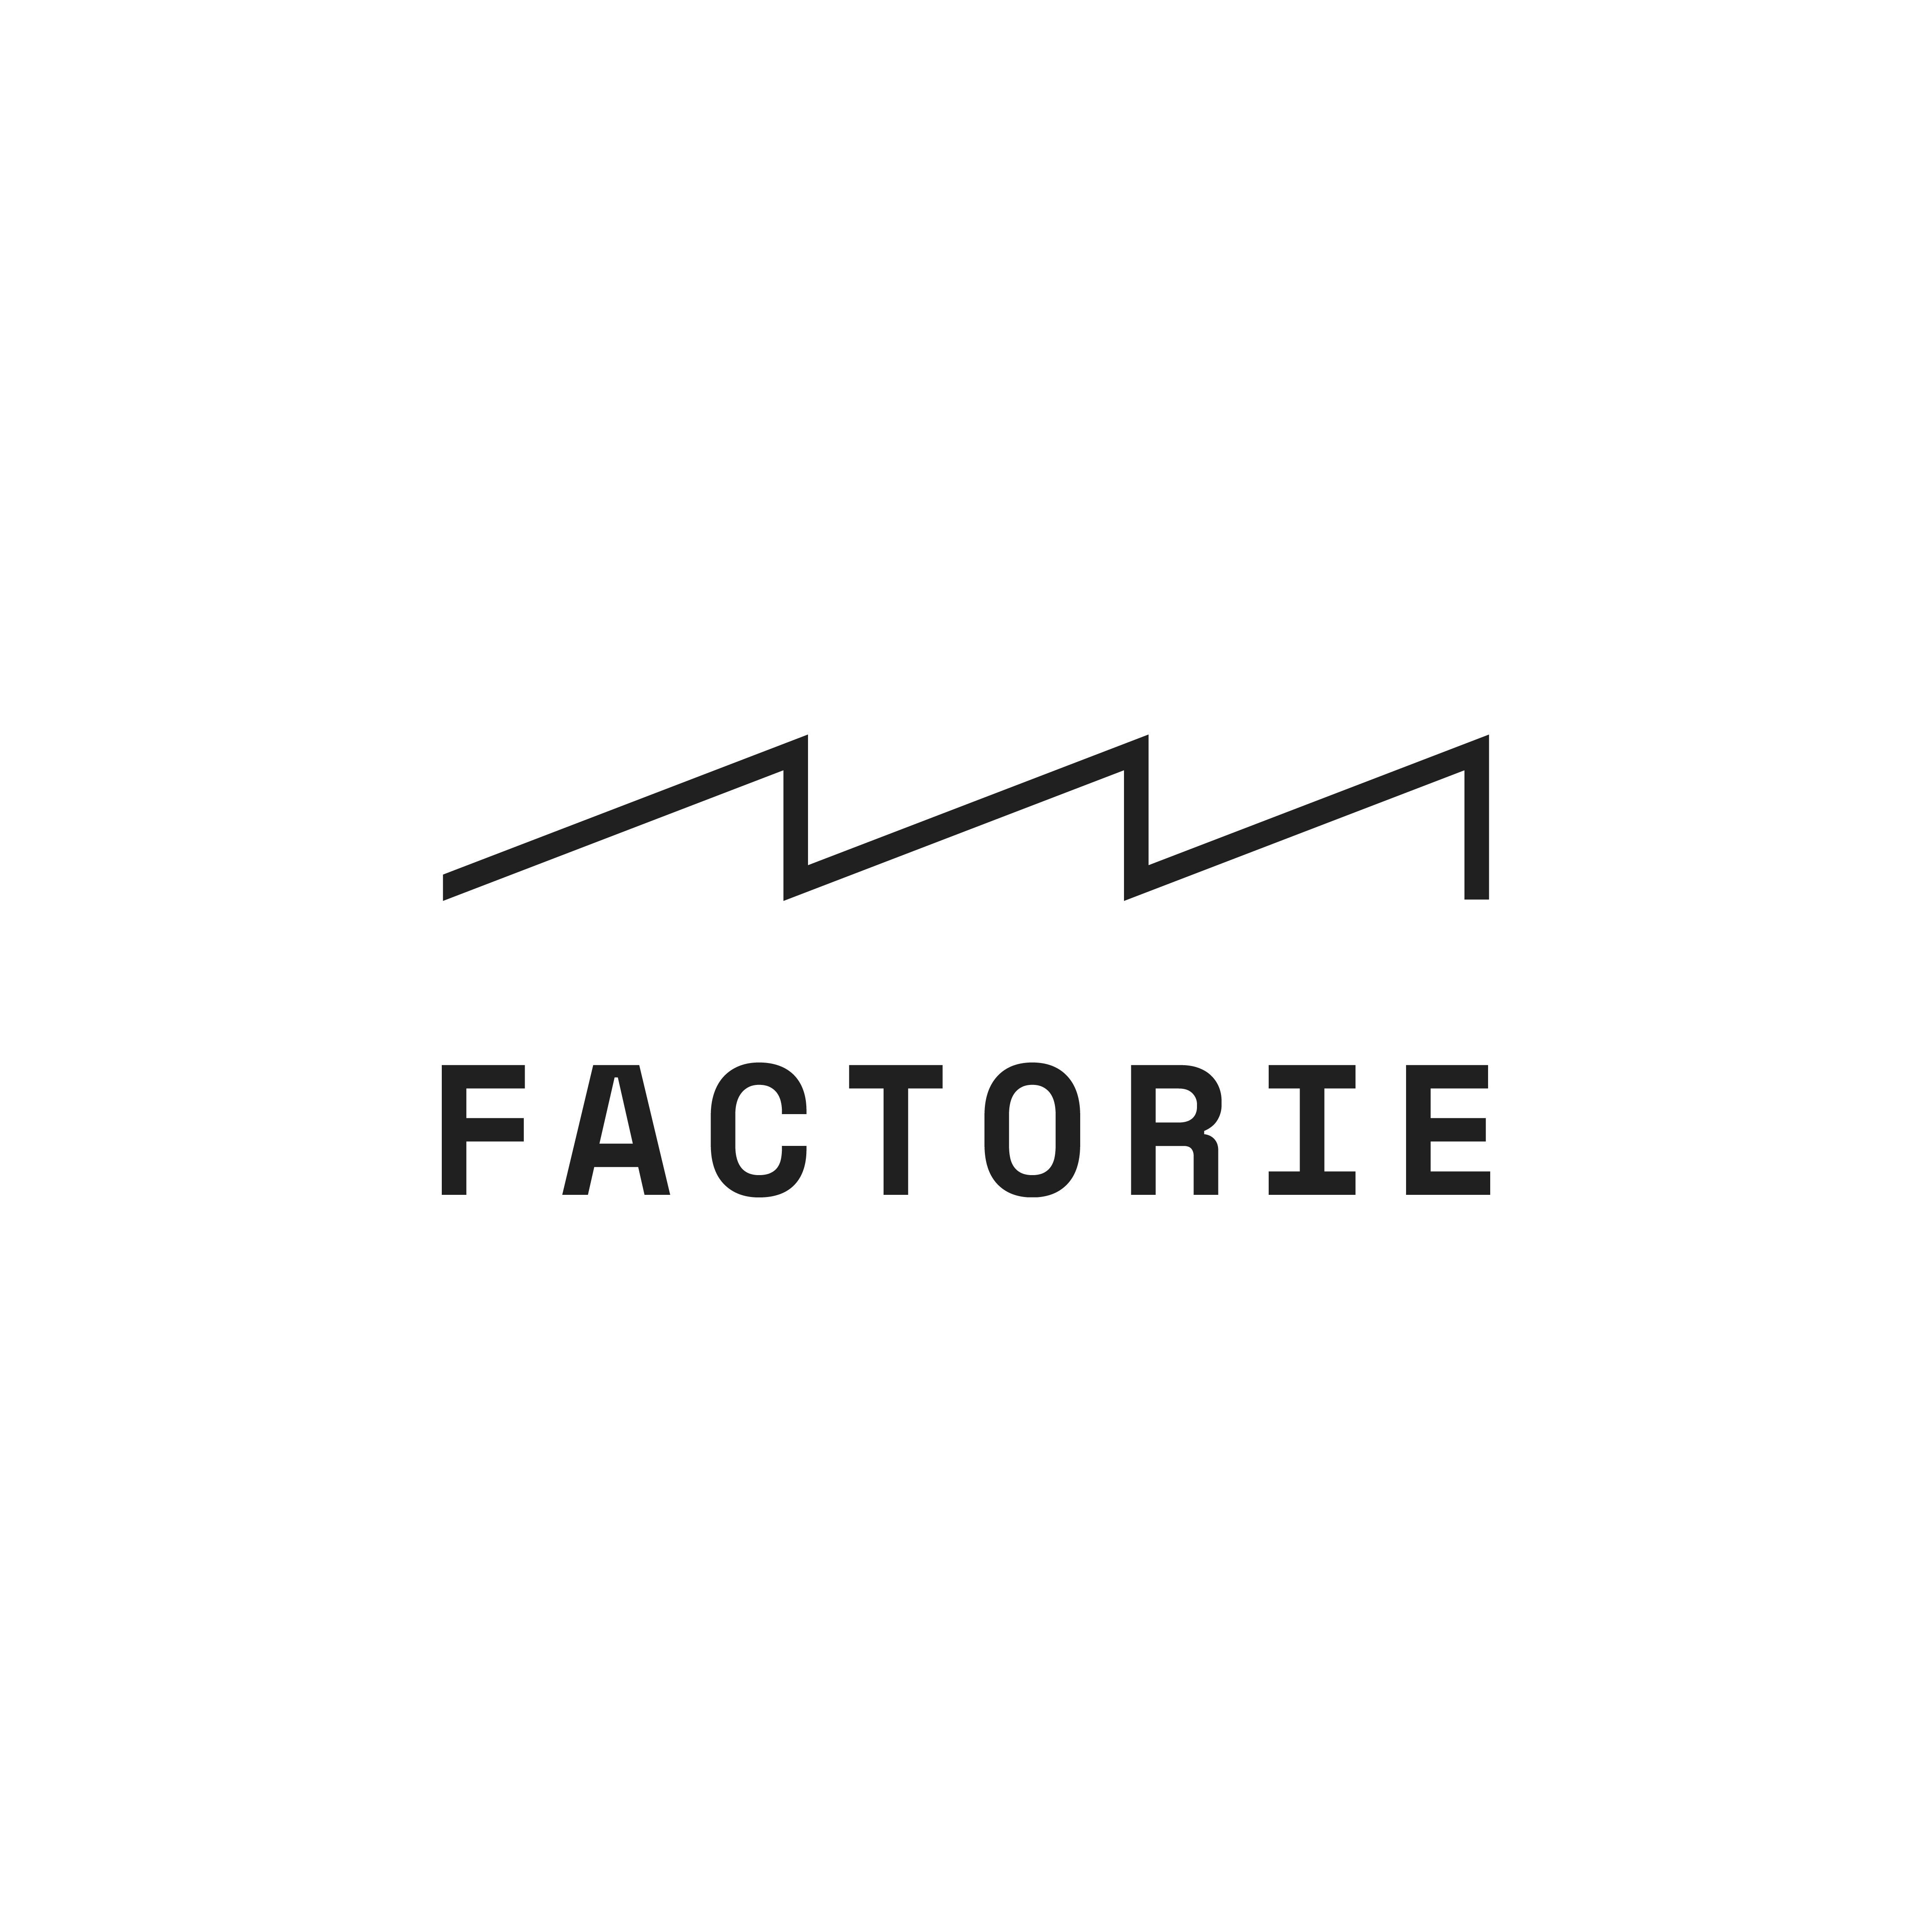 Factorie  (Temporarily Closed)